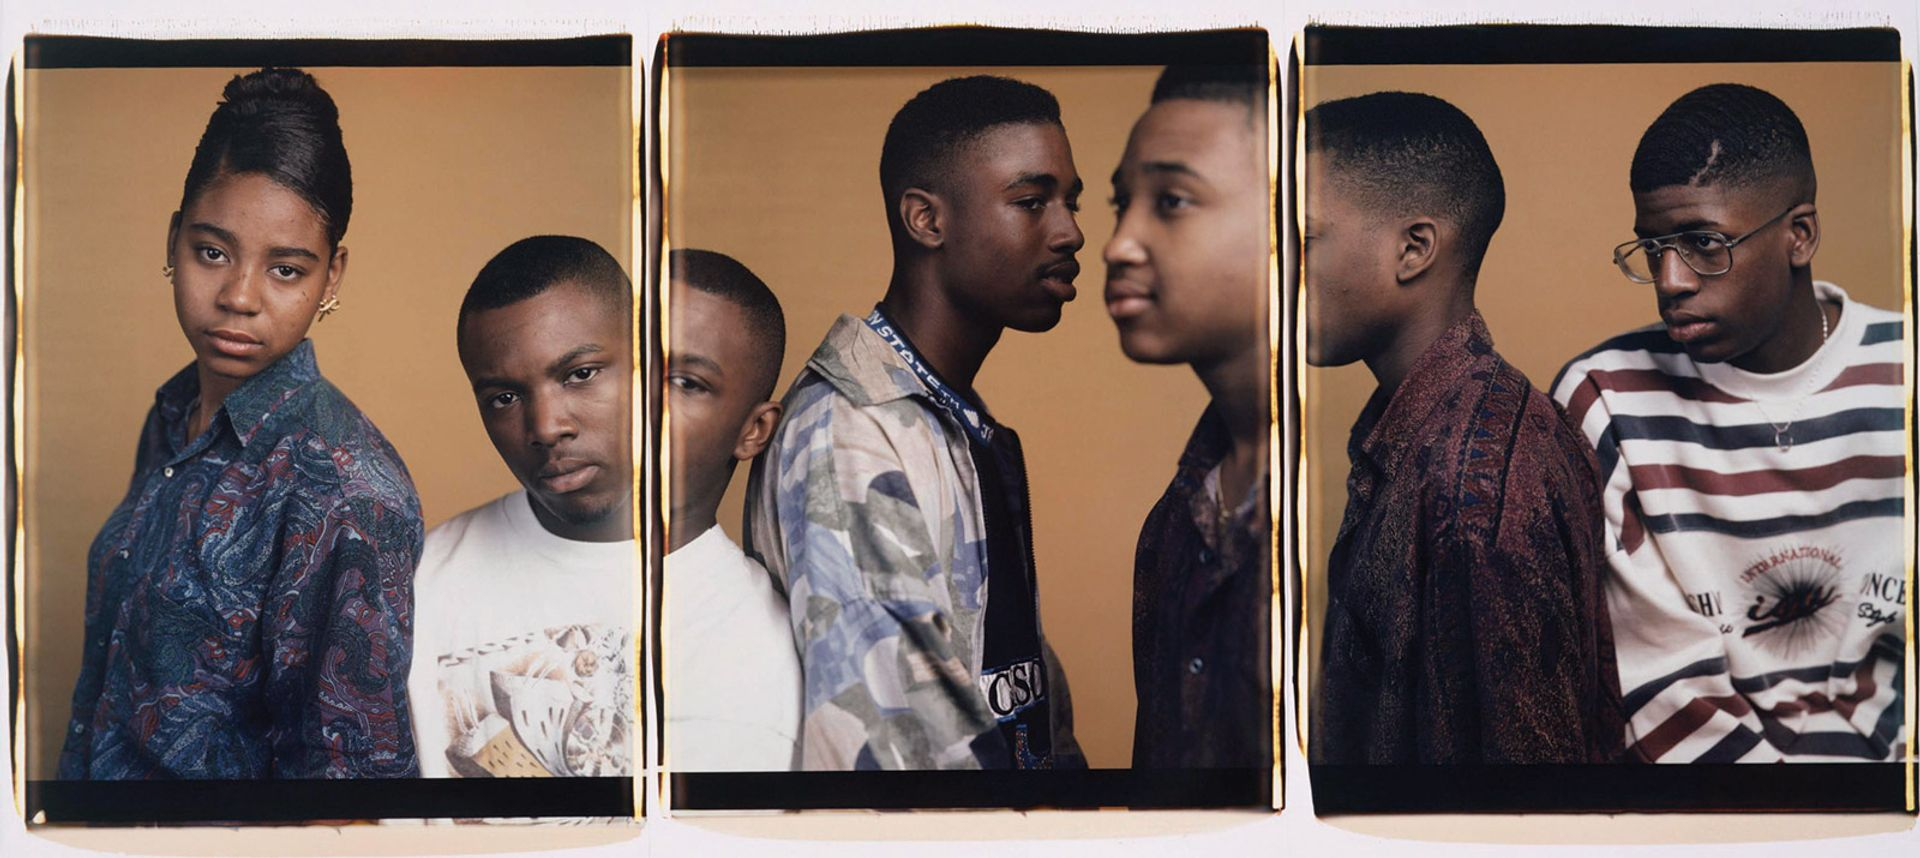 Dawoud Bey's Sharmaine, Vicente, Joseph, Andre, and Charlie (1993), is in Toward Common Cause show Courtesy of the artist